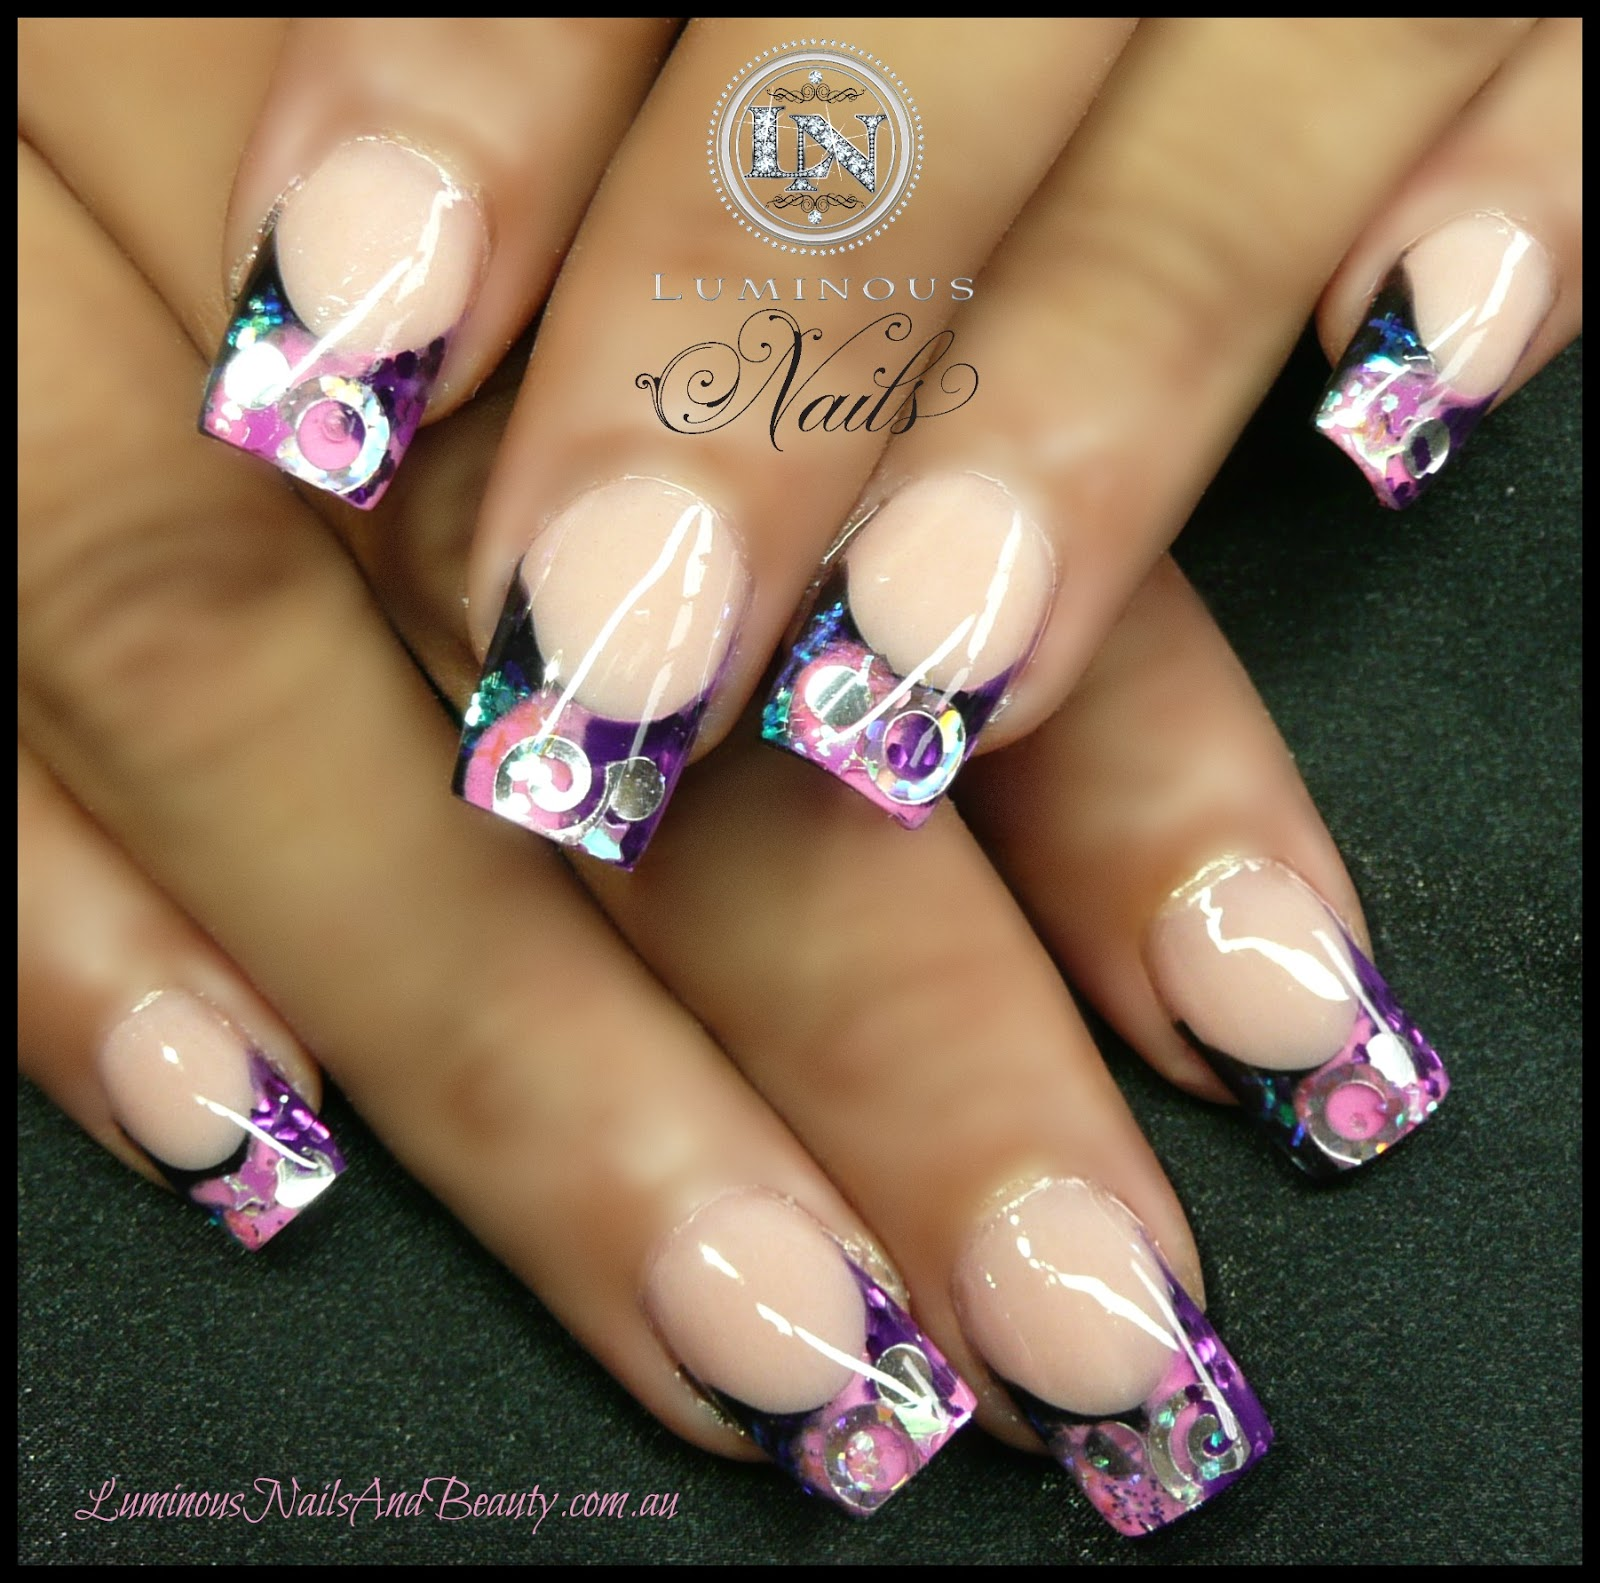 The Appealing Black nails with pink glitter Photograph